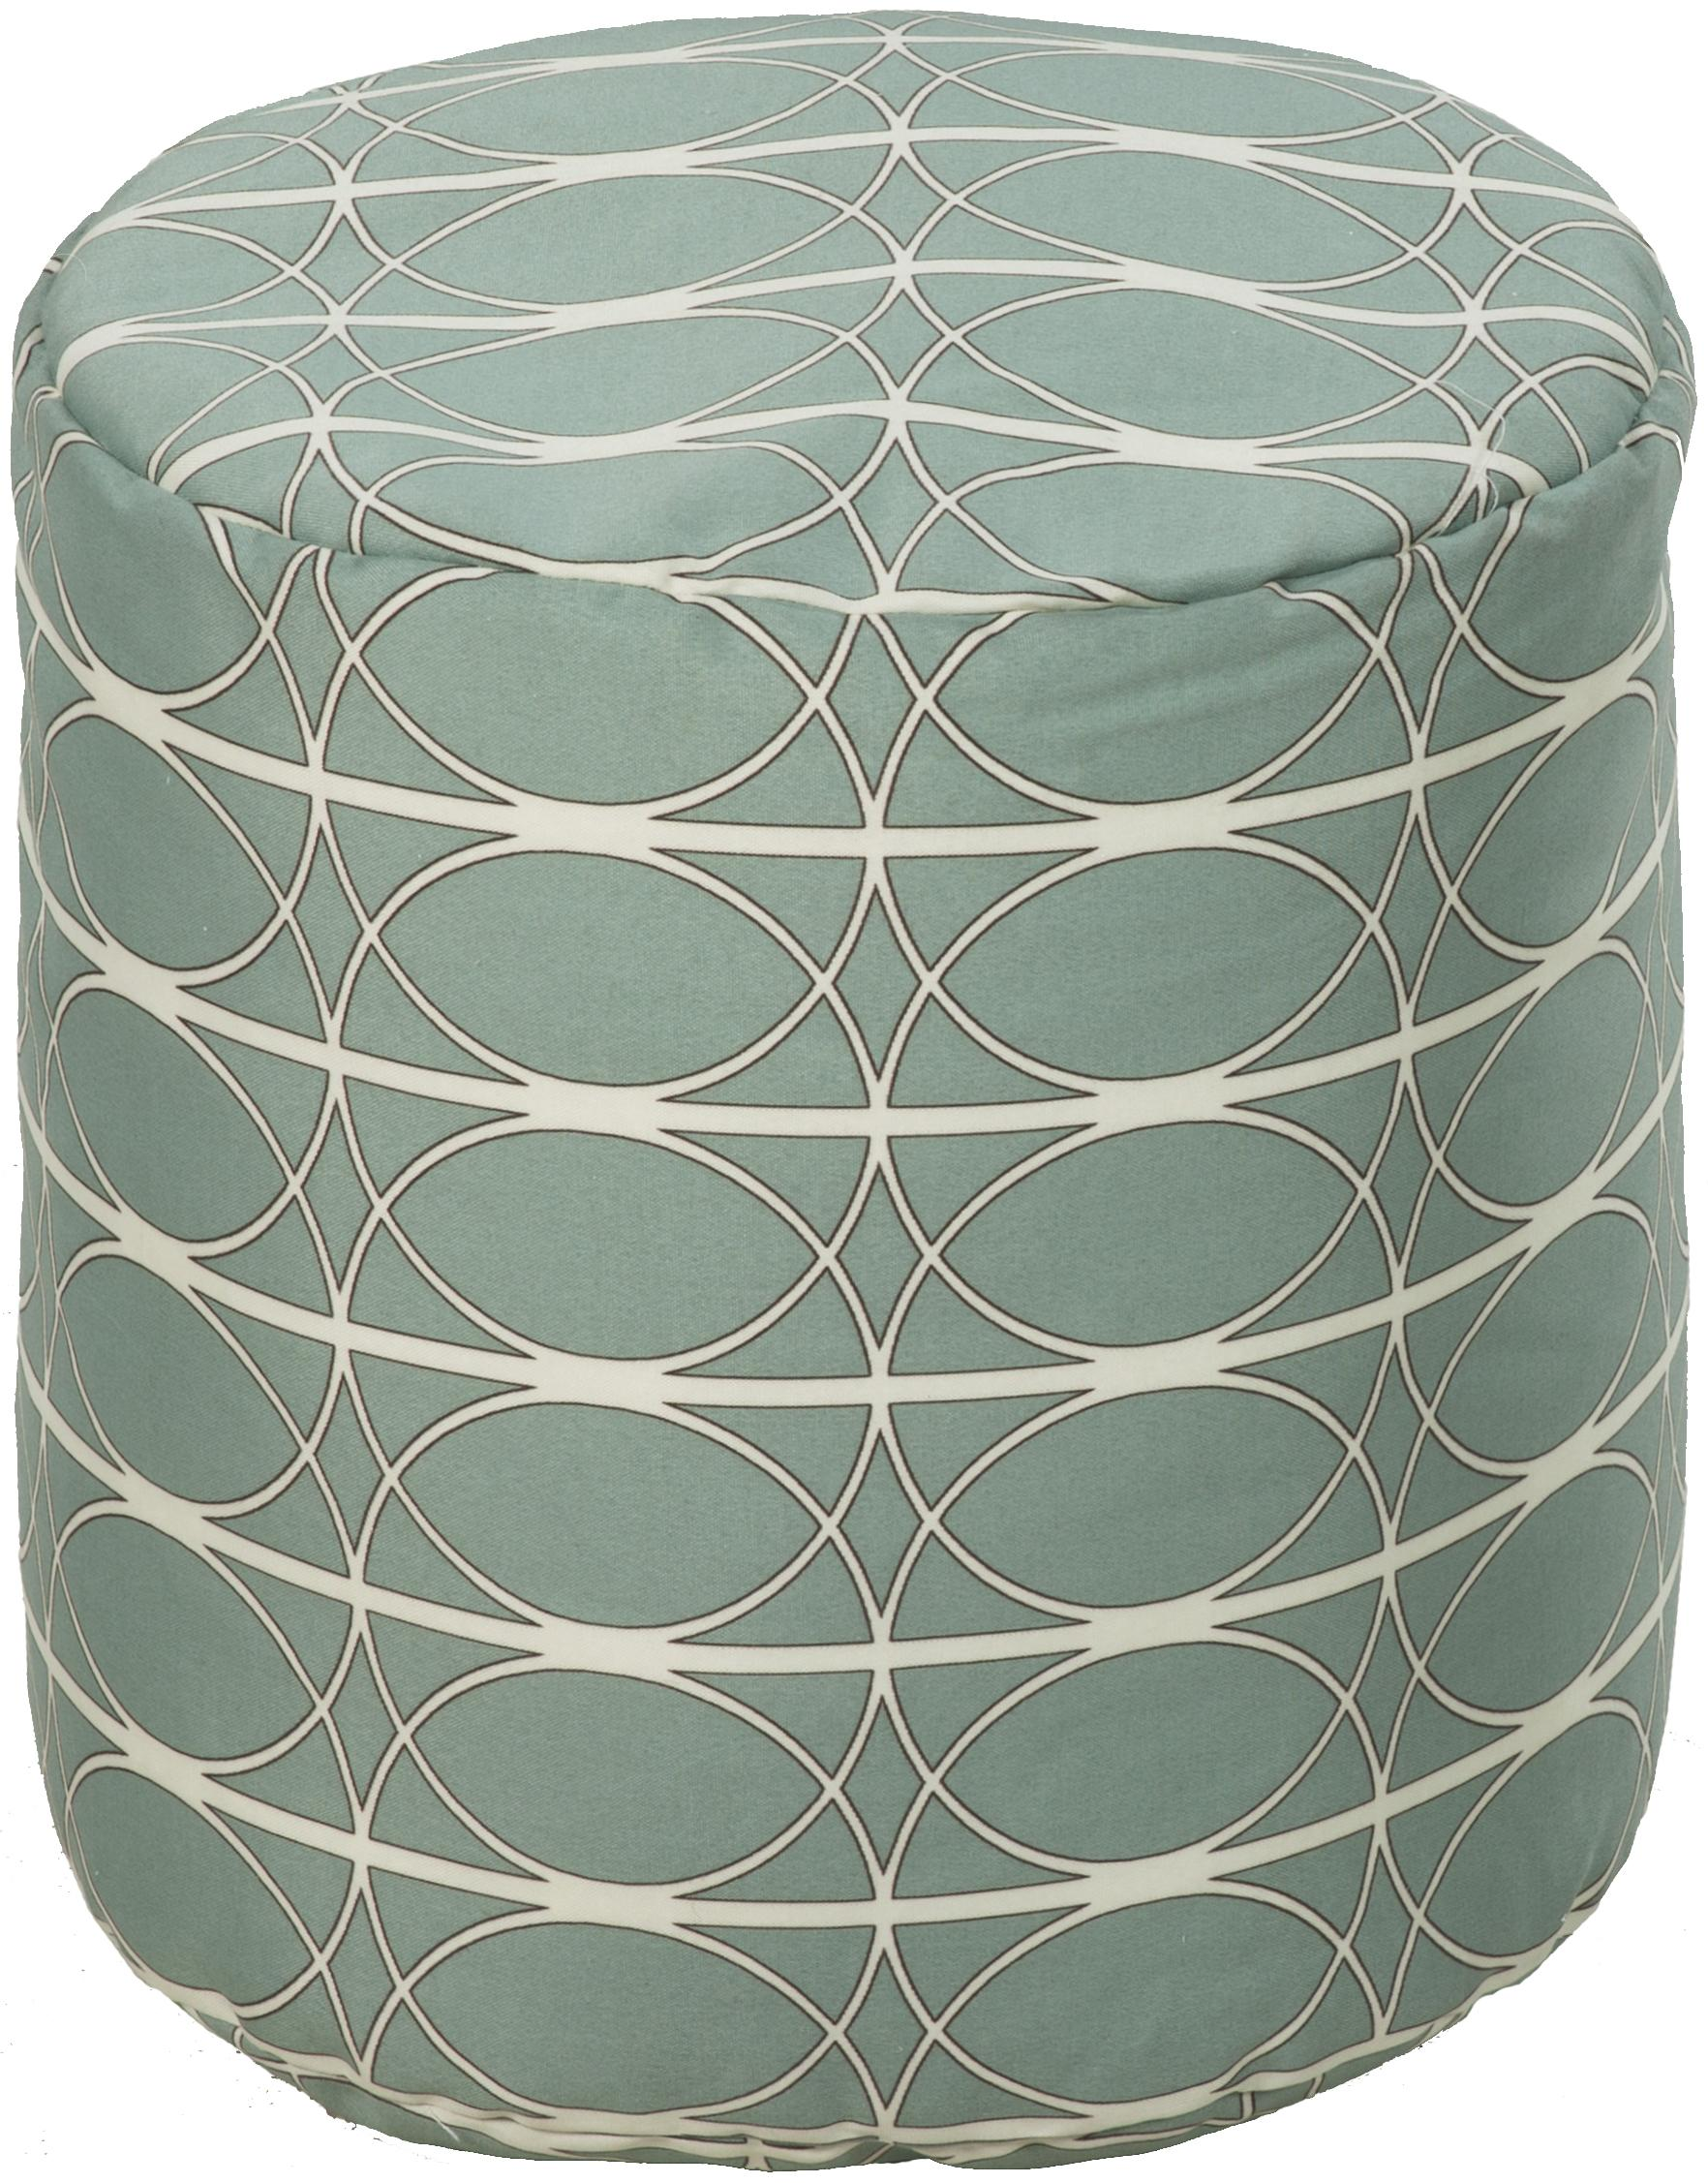 "Surya Rugs Poufs Round 18"" Pouf - Item Number: POUF-104"